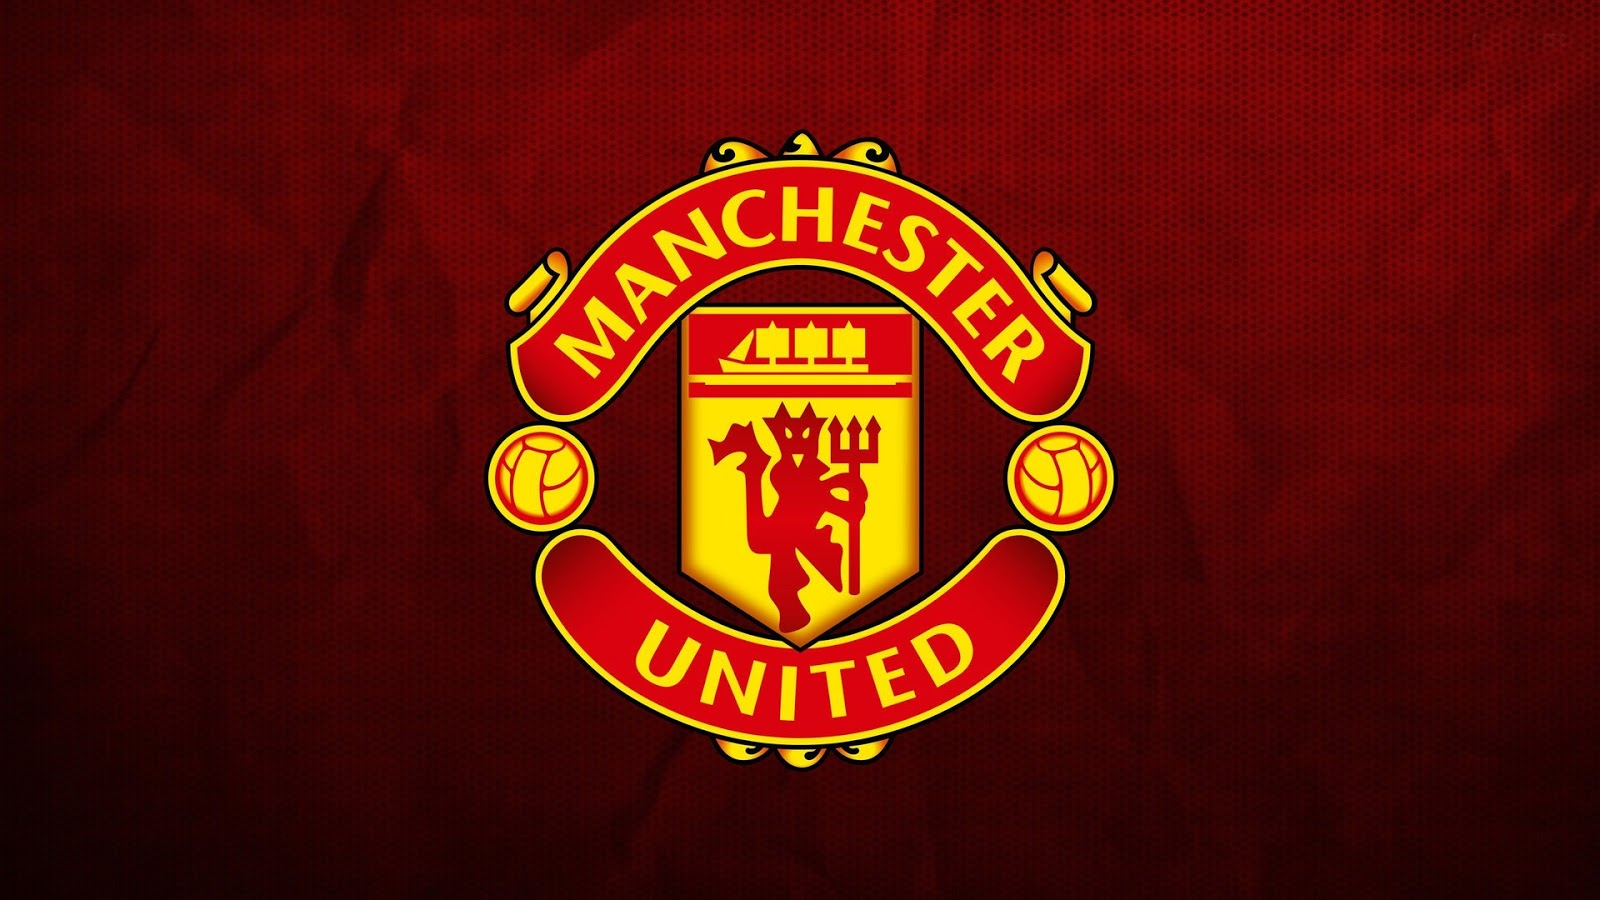 Manchester United FC New HD Wallpapers 2013 2014 1600x900